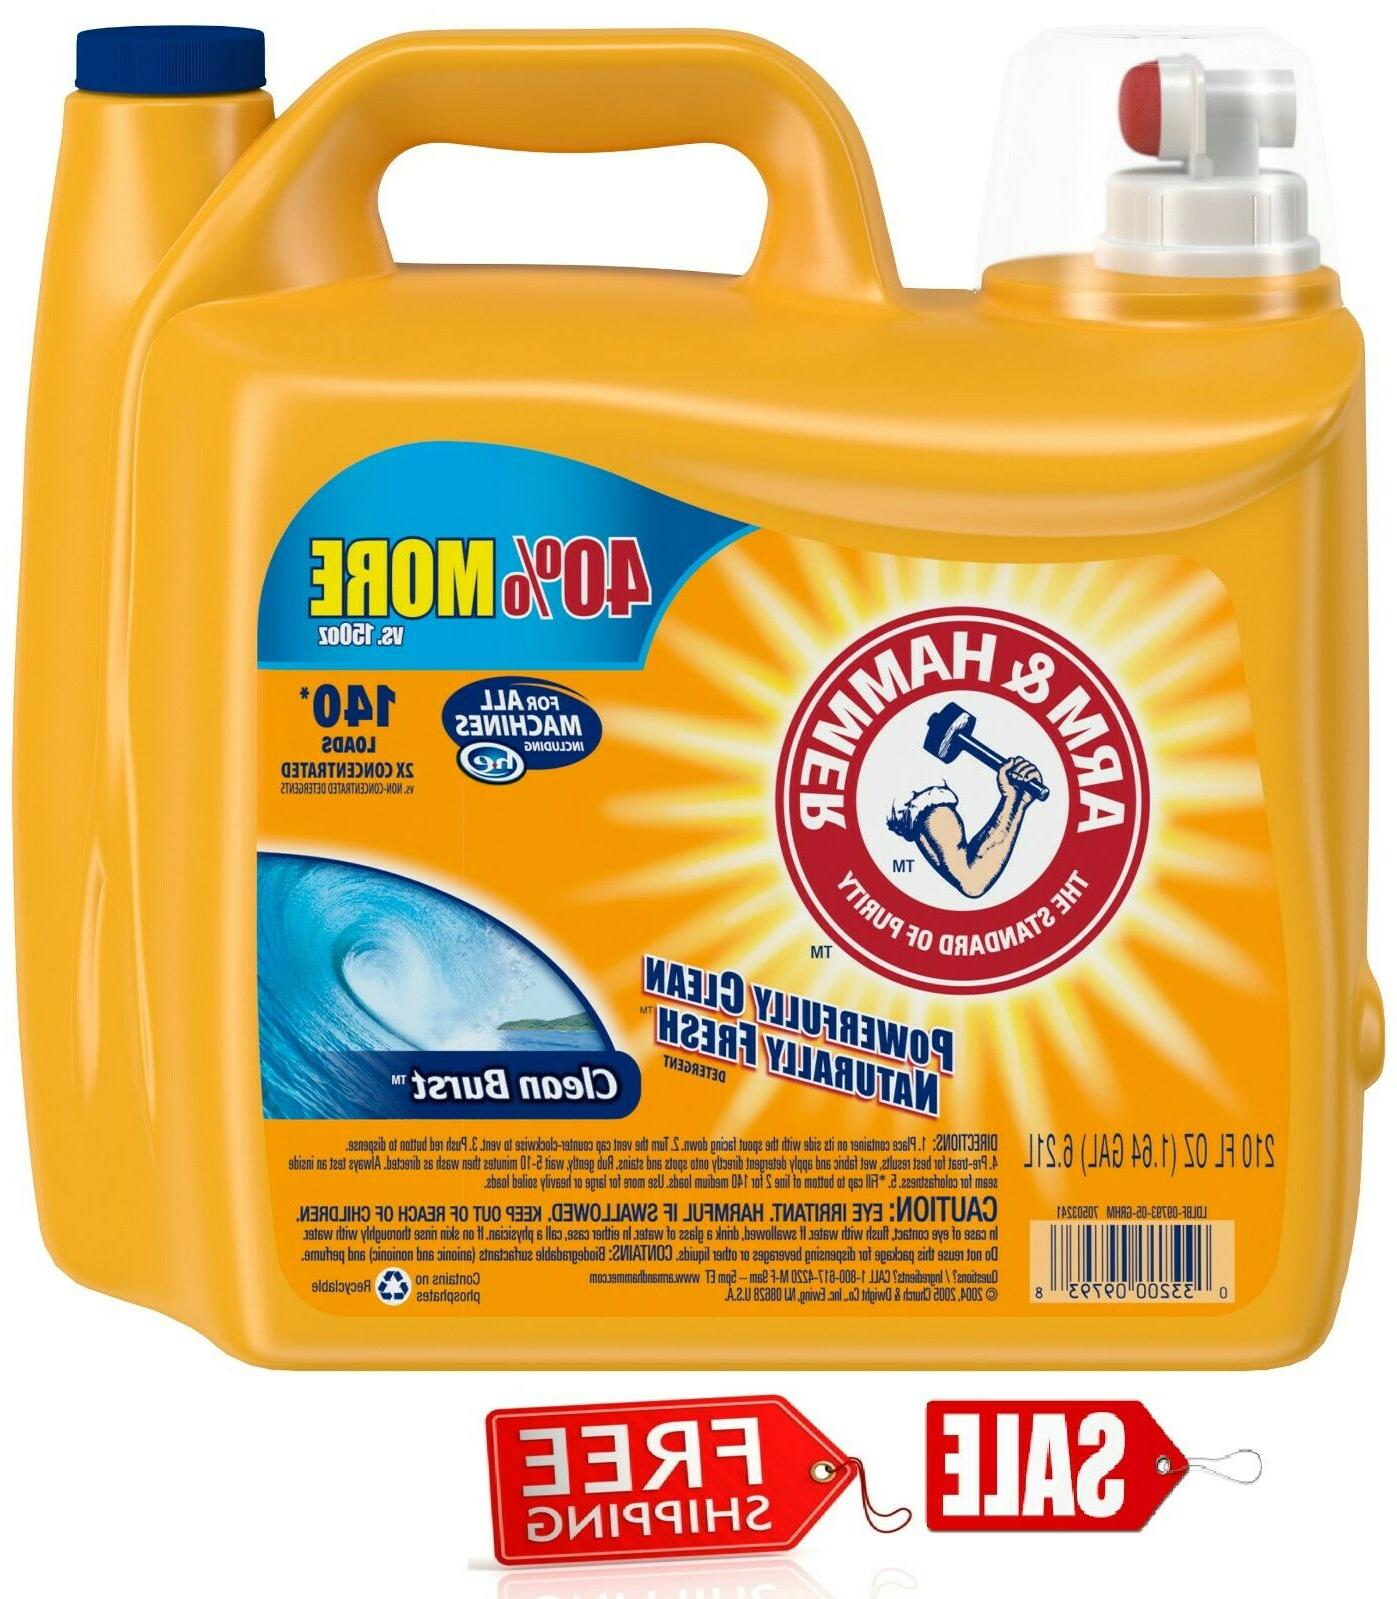 new arm and hammer clean burst 140